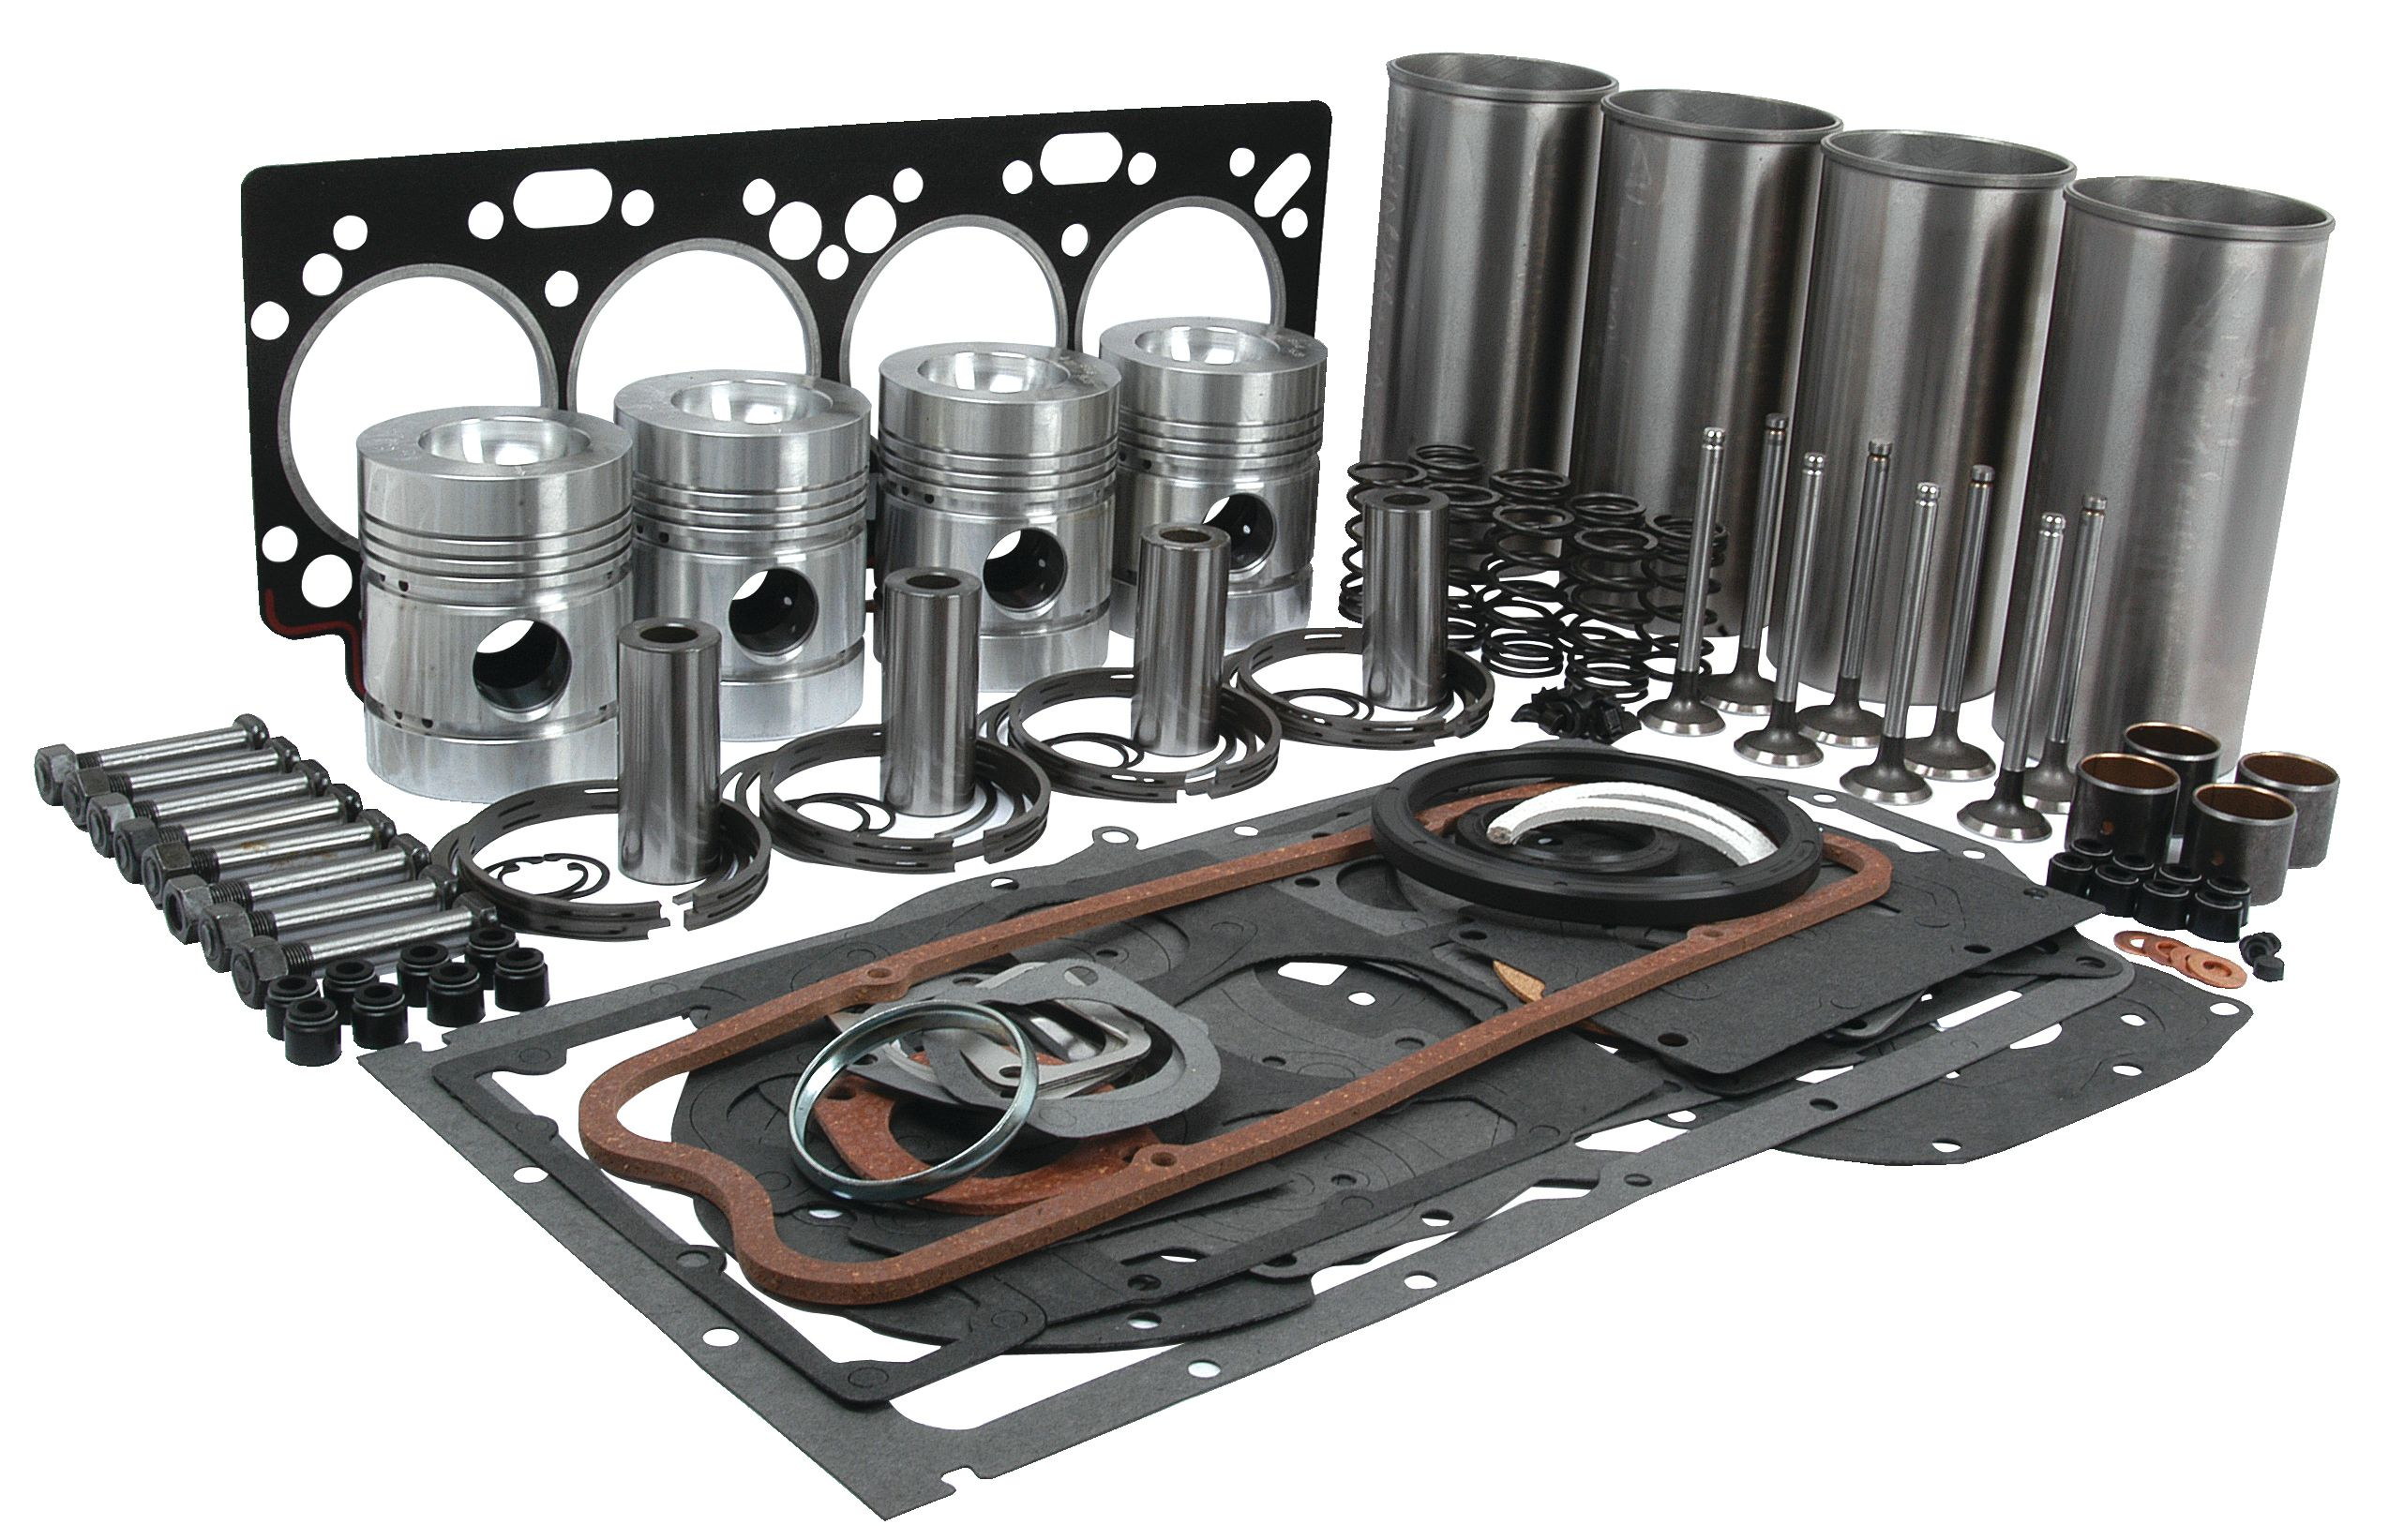 PERKINS ENGINE OVERHAUL KIT 40377